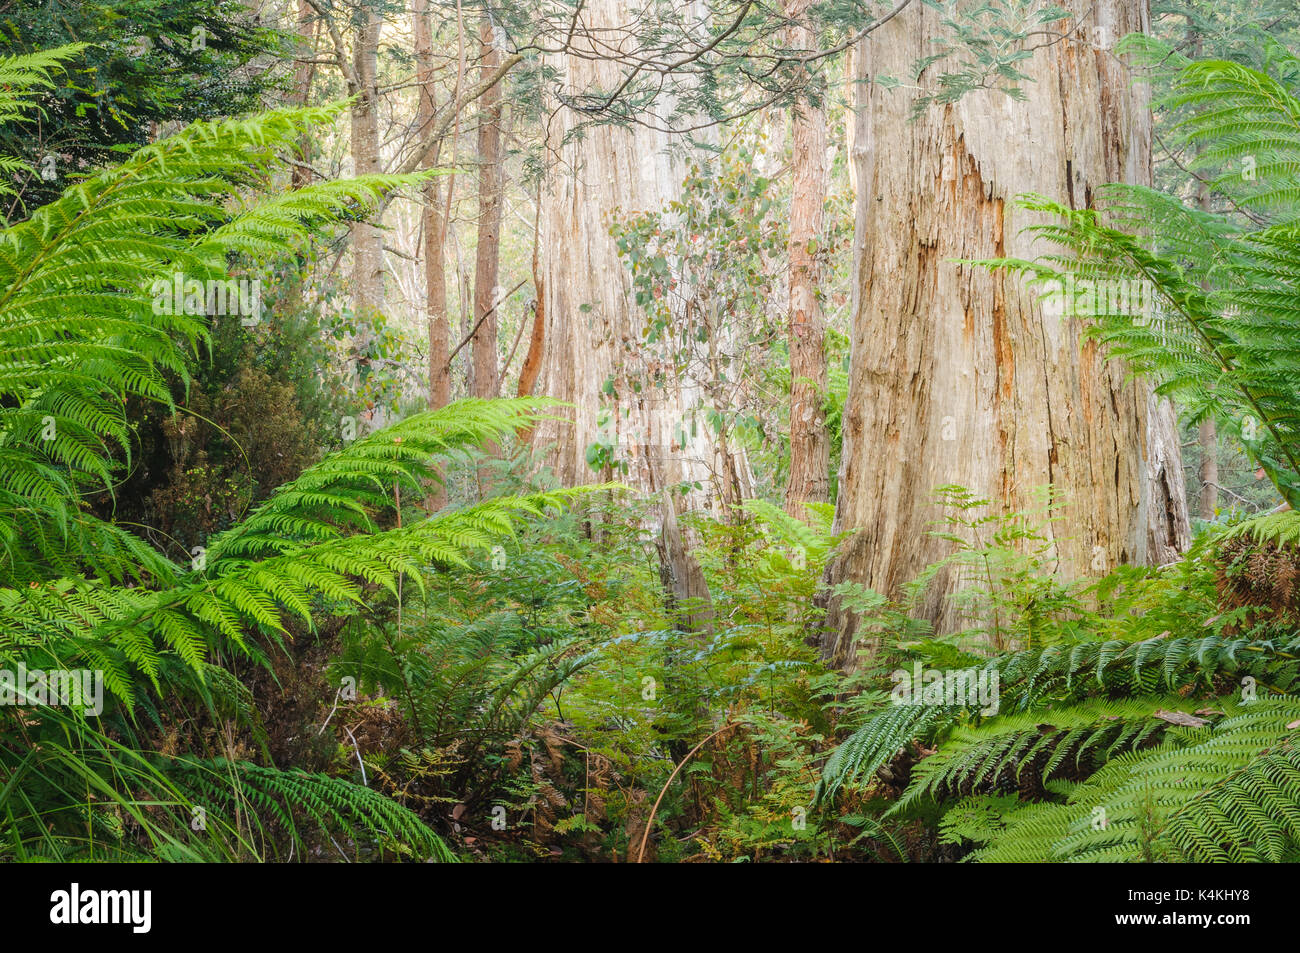 Dense eucalyptus forest at Lake St Clair. - Stock Image